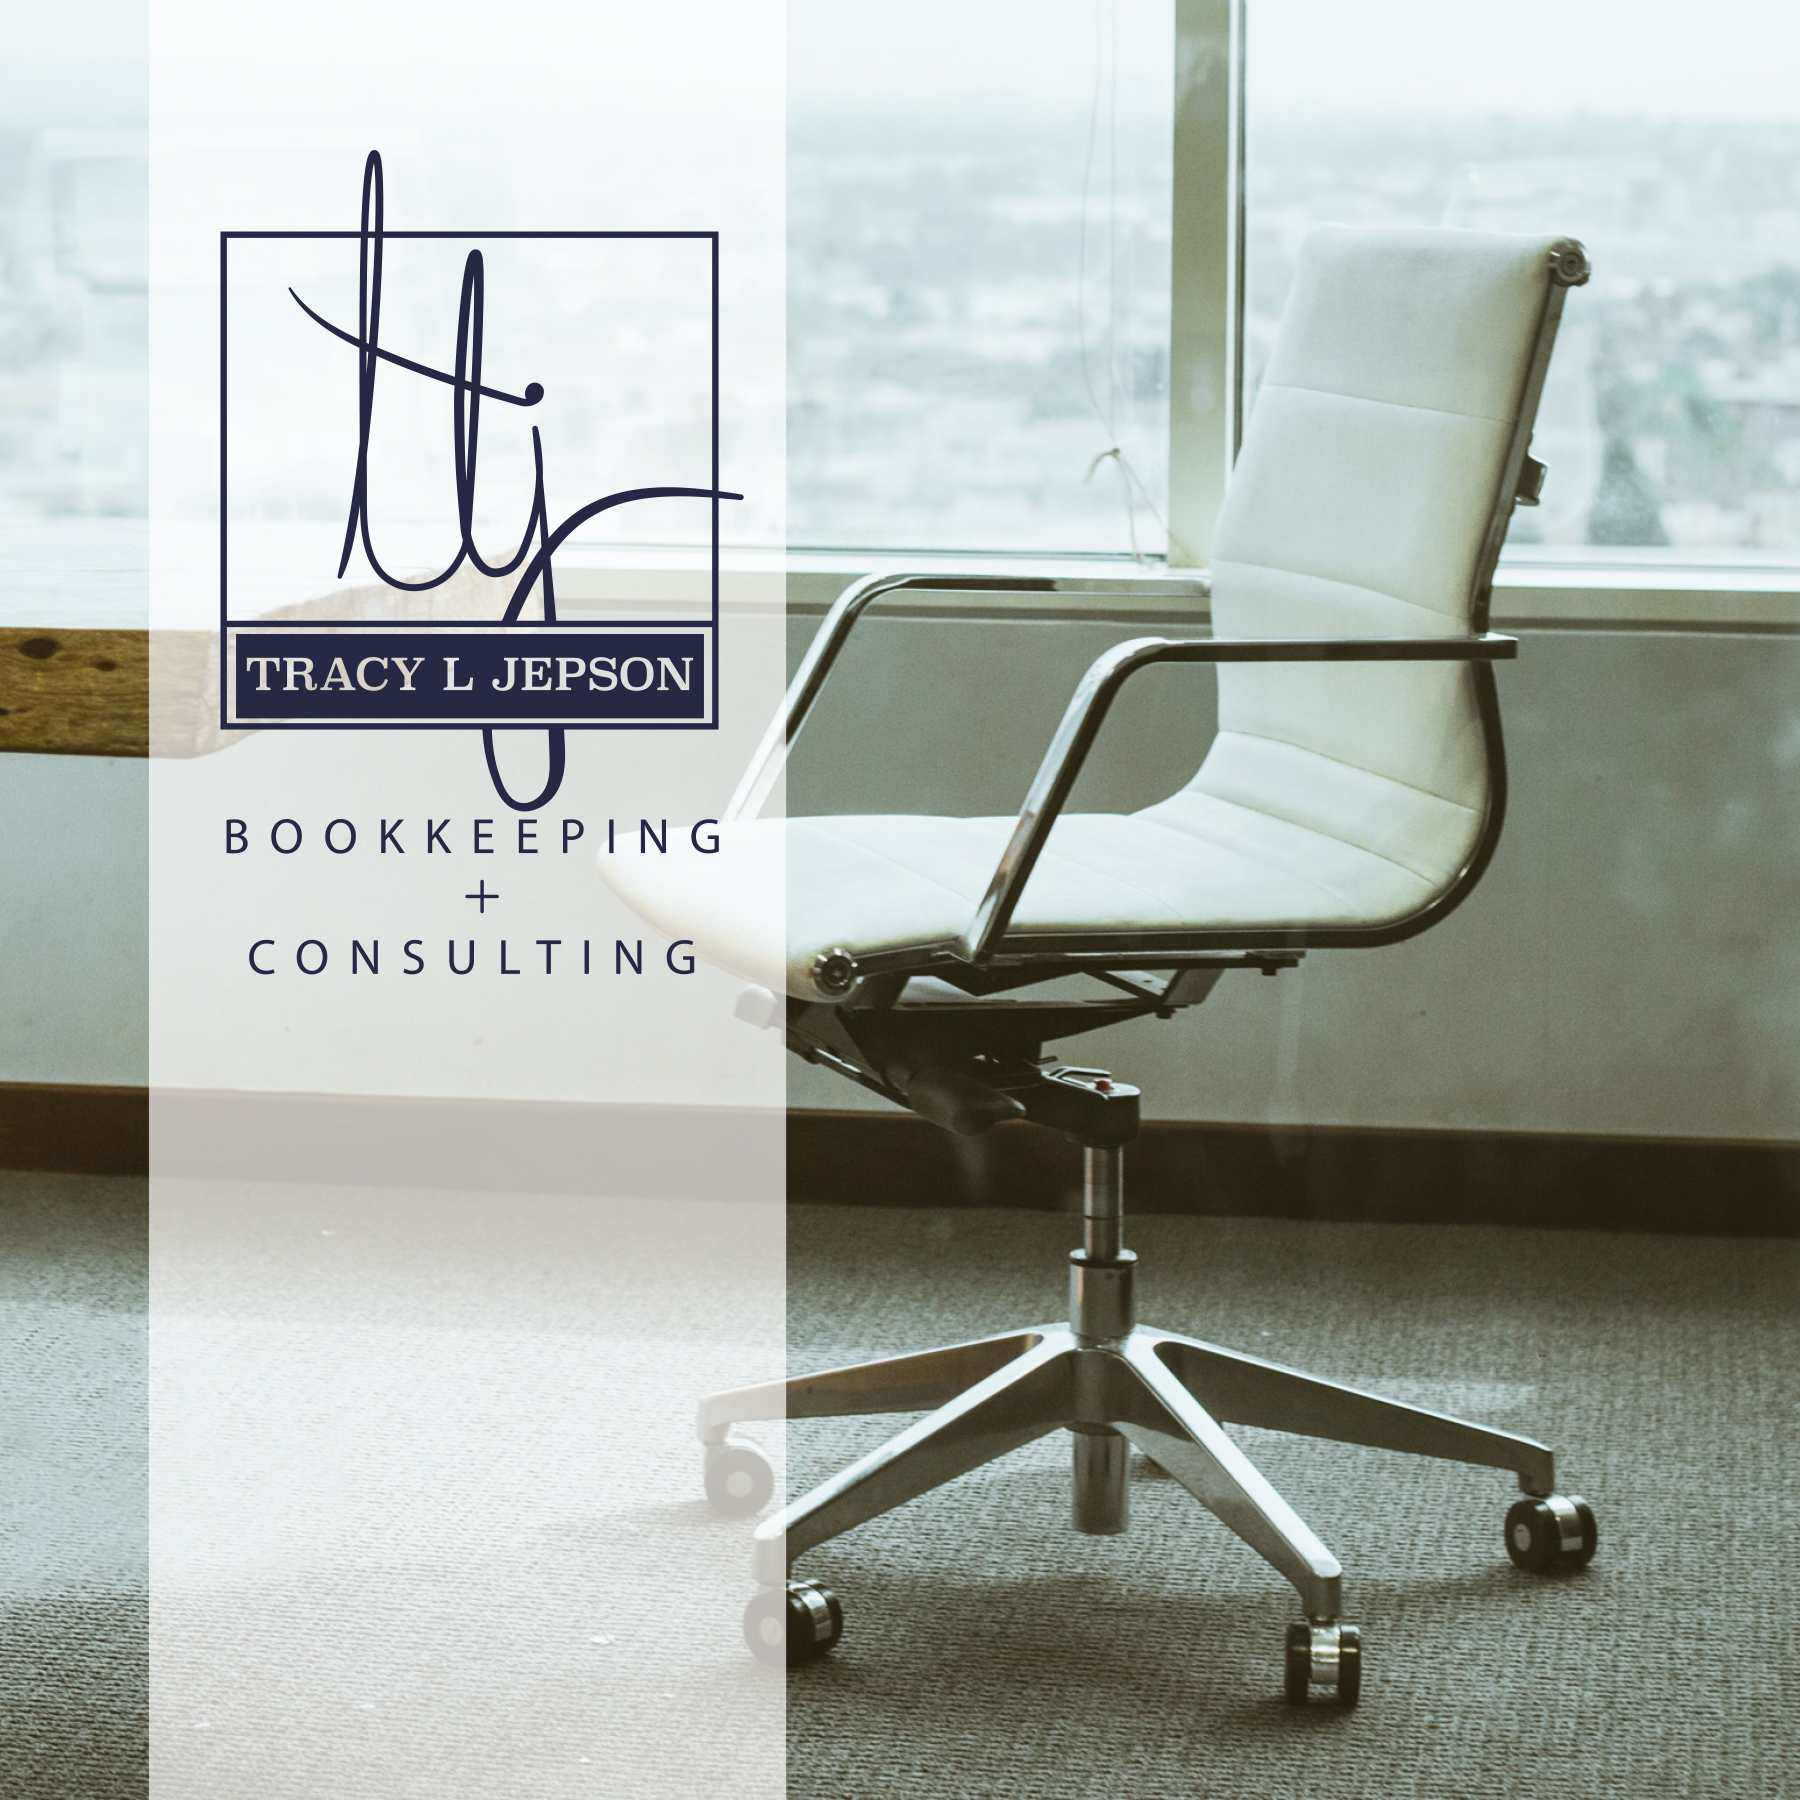 Bookkeeping and Consulting logo design